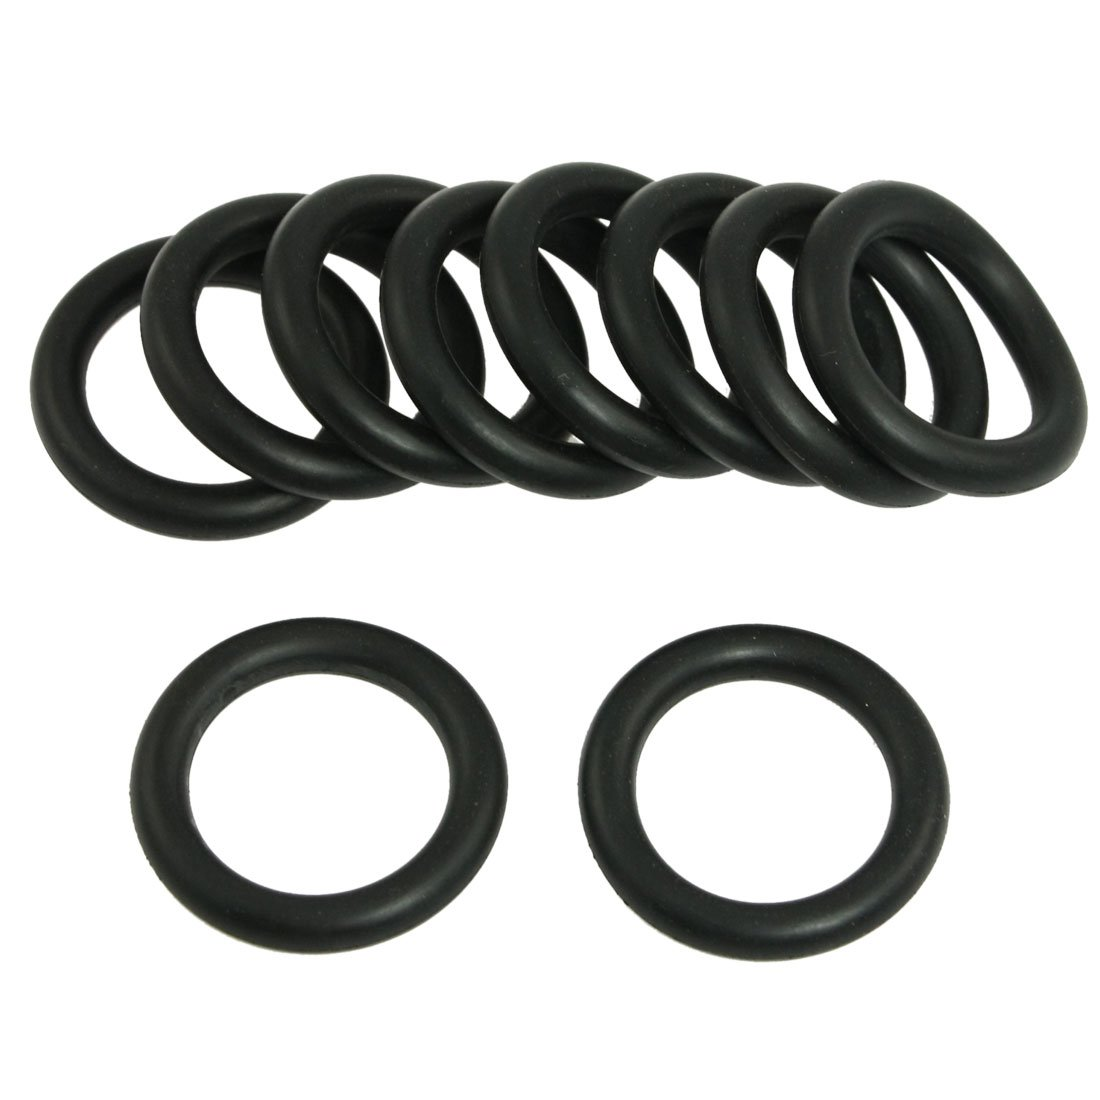 10pcs O-Rings Nitrile Rubber 20mm-32mm OD 4mm Width Seal Rings Sealing Gasket